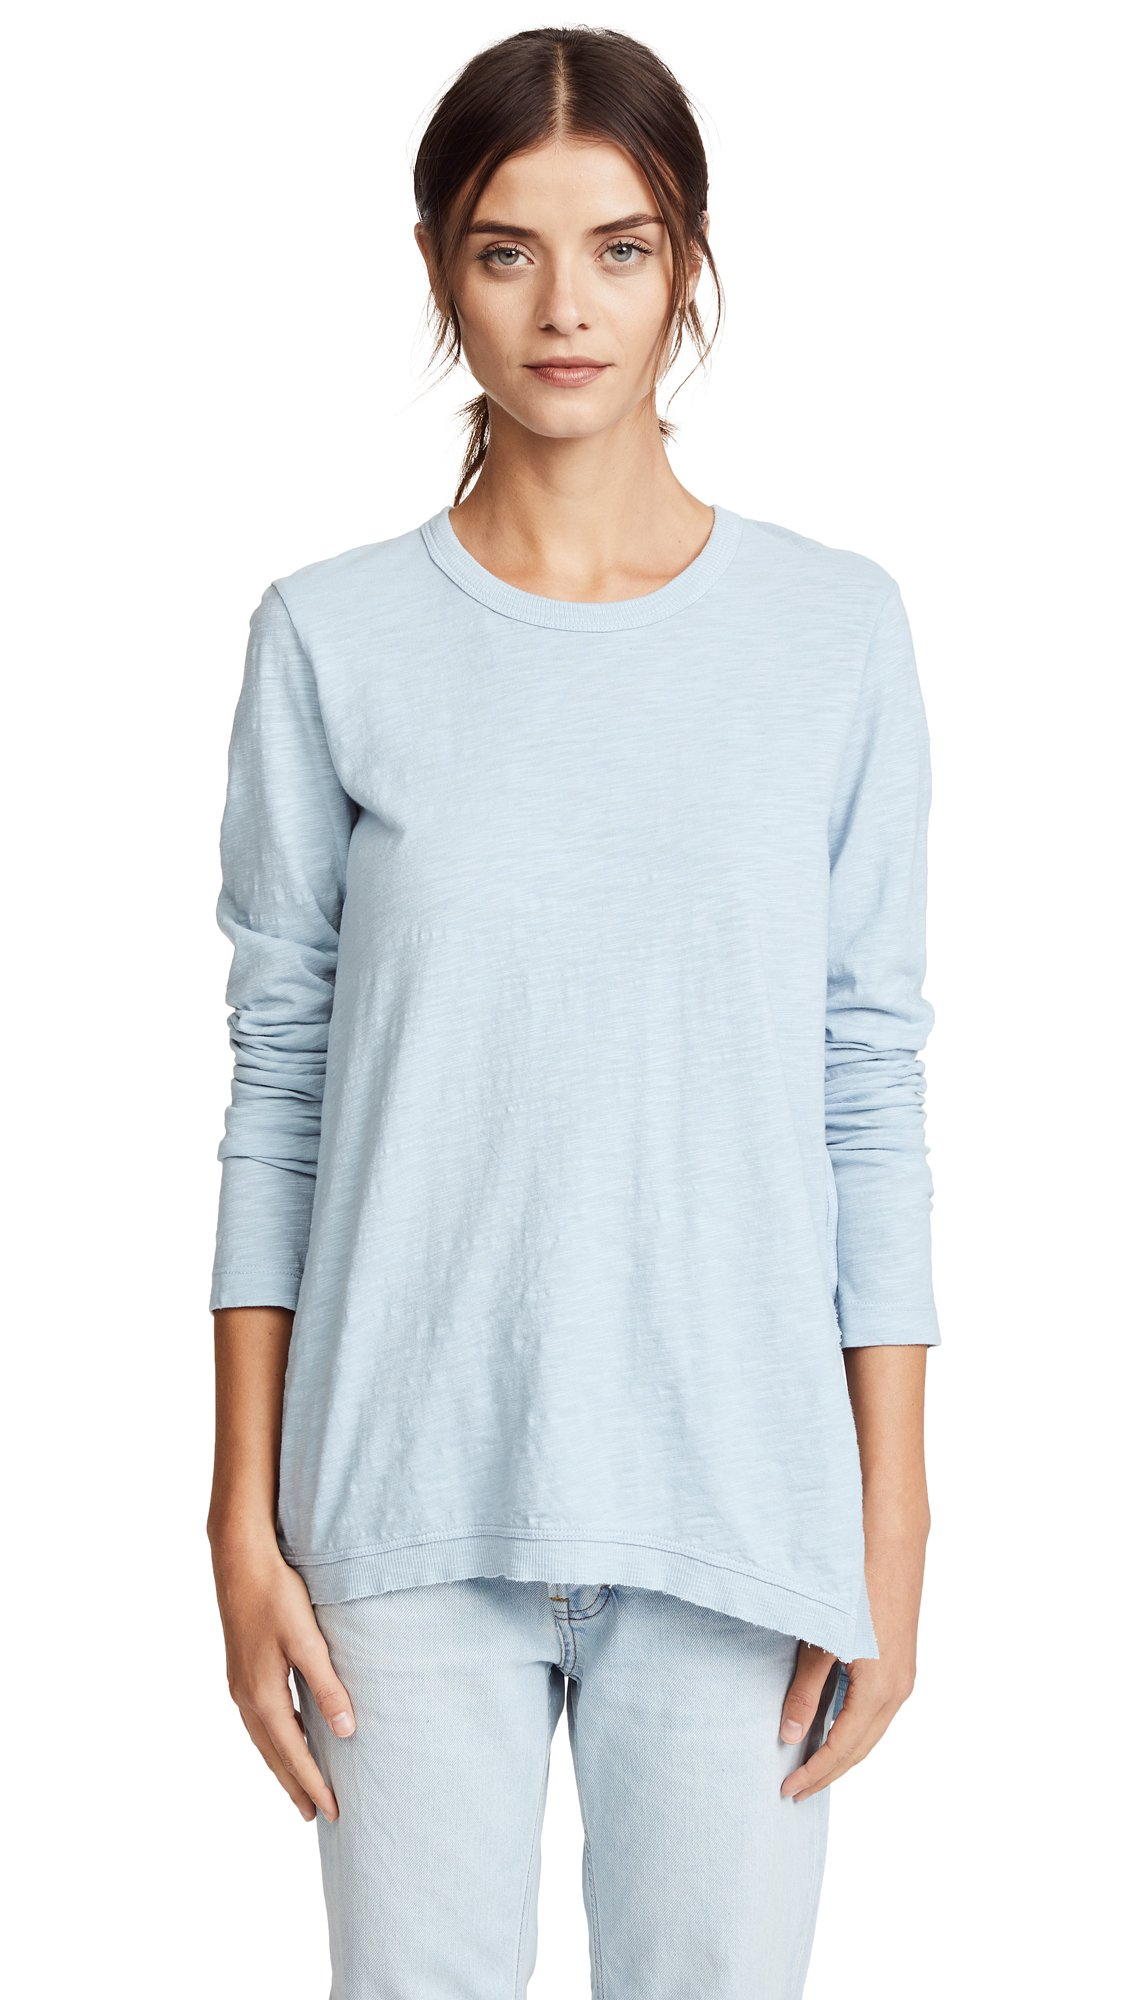 Wilt Women's Asymmetrical Tunic Tee, Washed Blue, Small